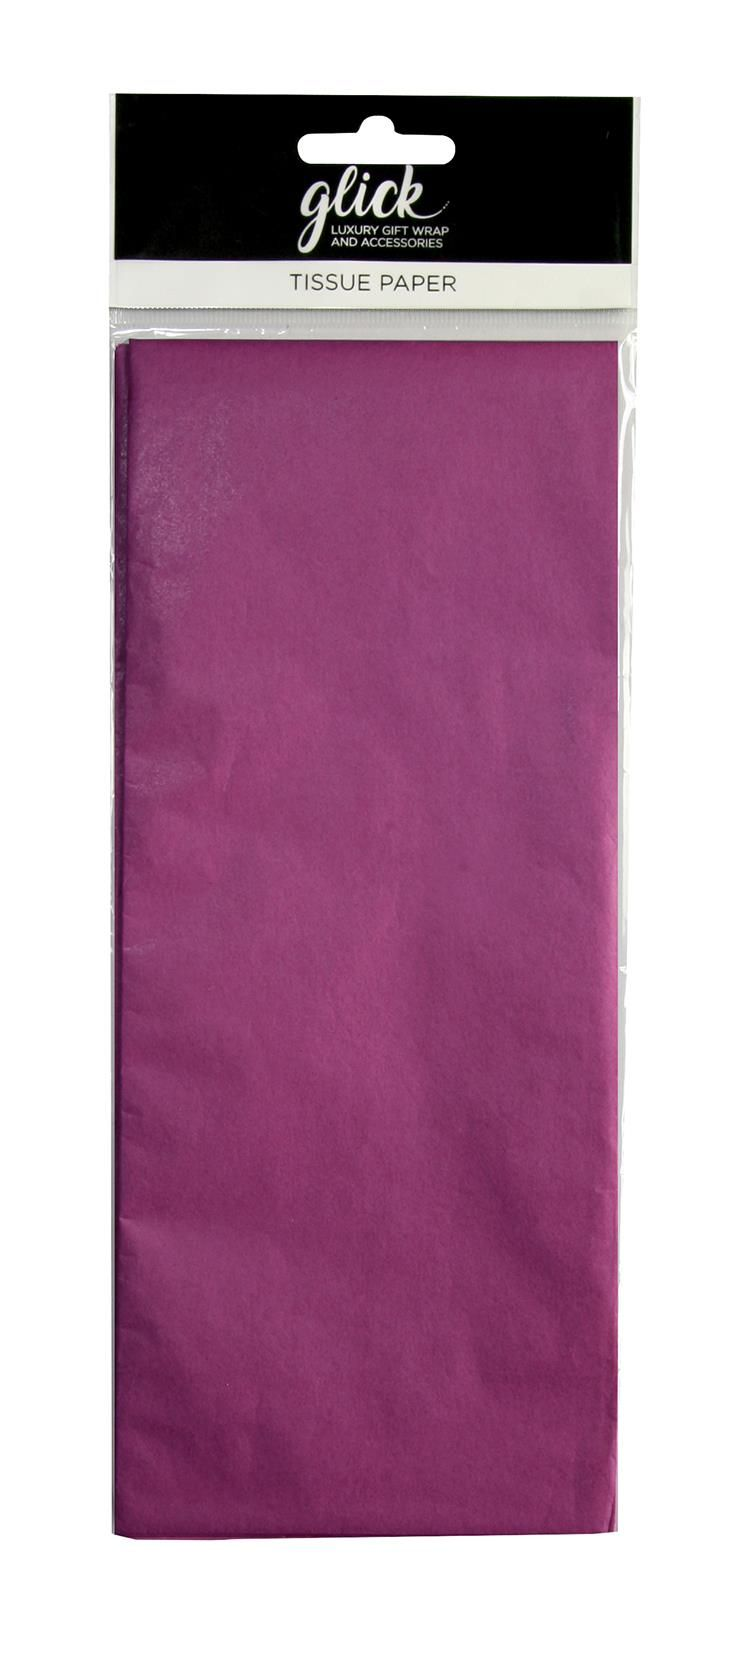 Fuschia Luxury Tissue Paper - Pack Of 4 LARGE Sheets - Luxury TISSUE Paper